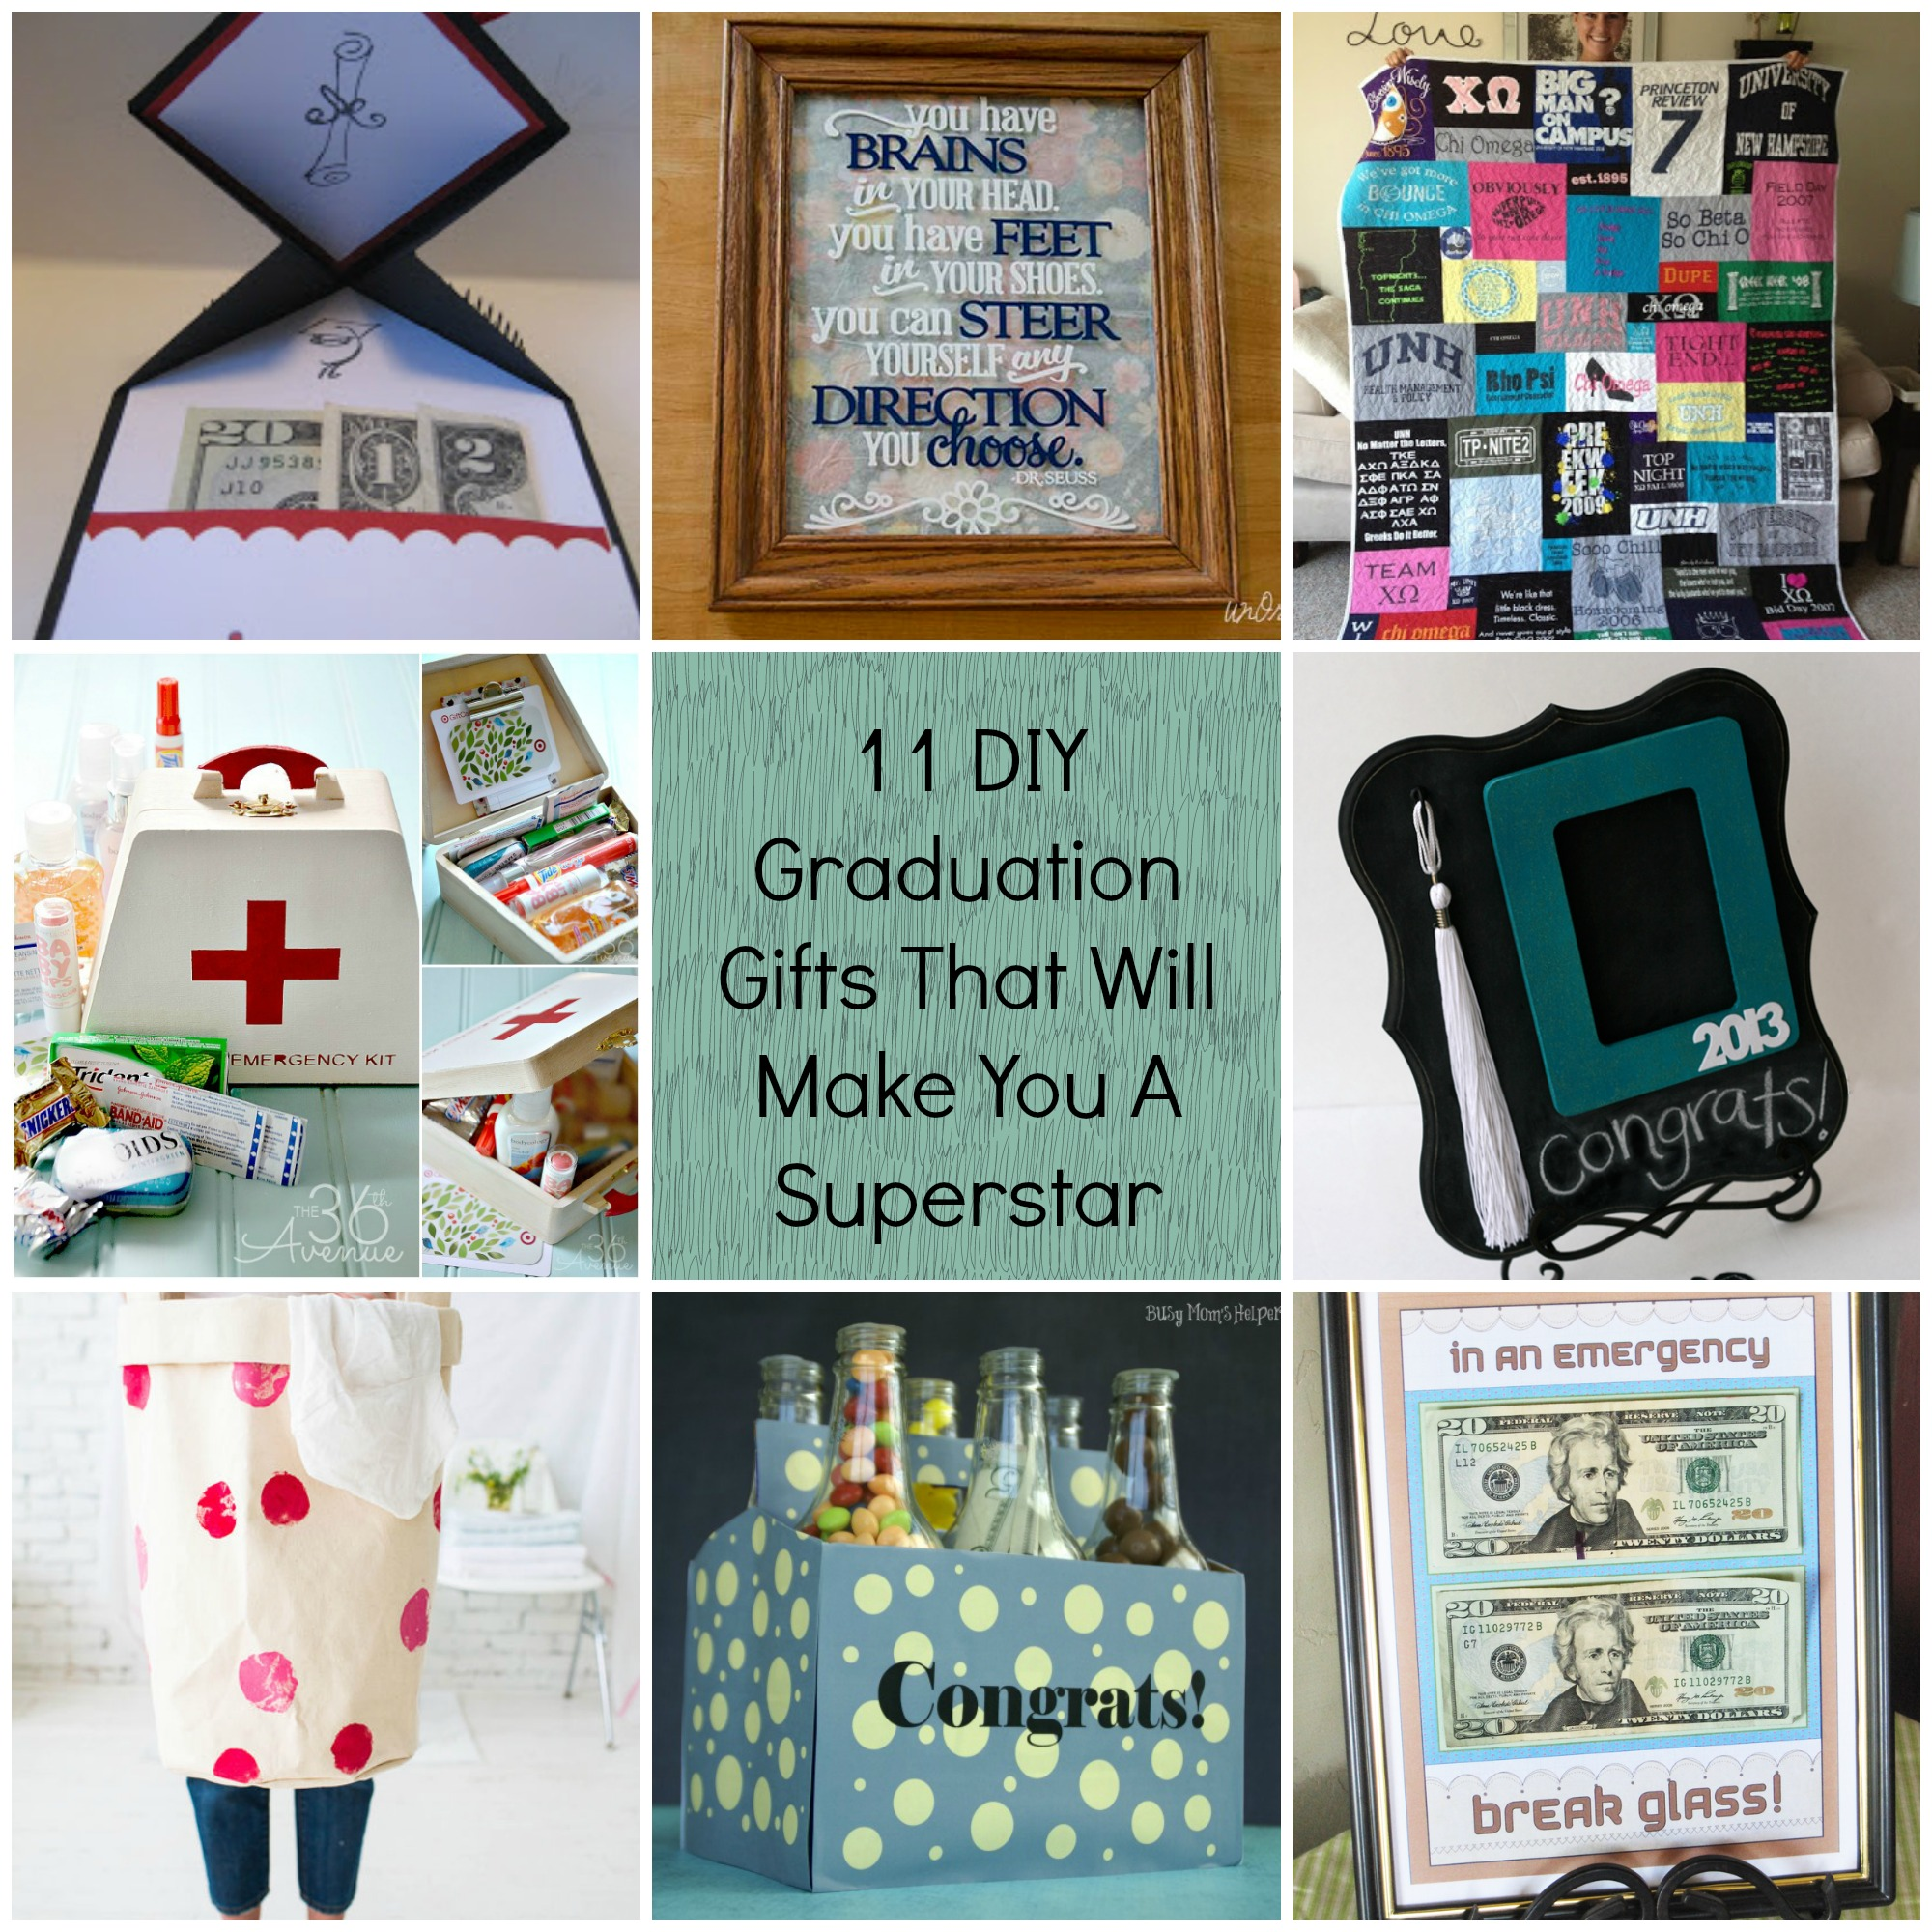 Graduation Party Ideas: 11 DIY Graduation Gifts That Will Make You A Superstar